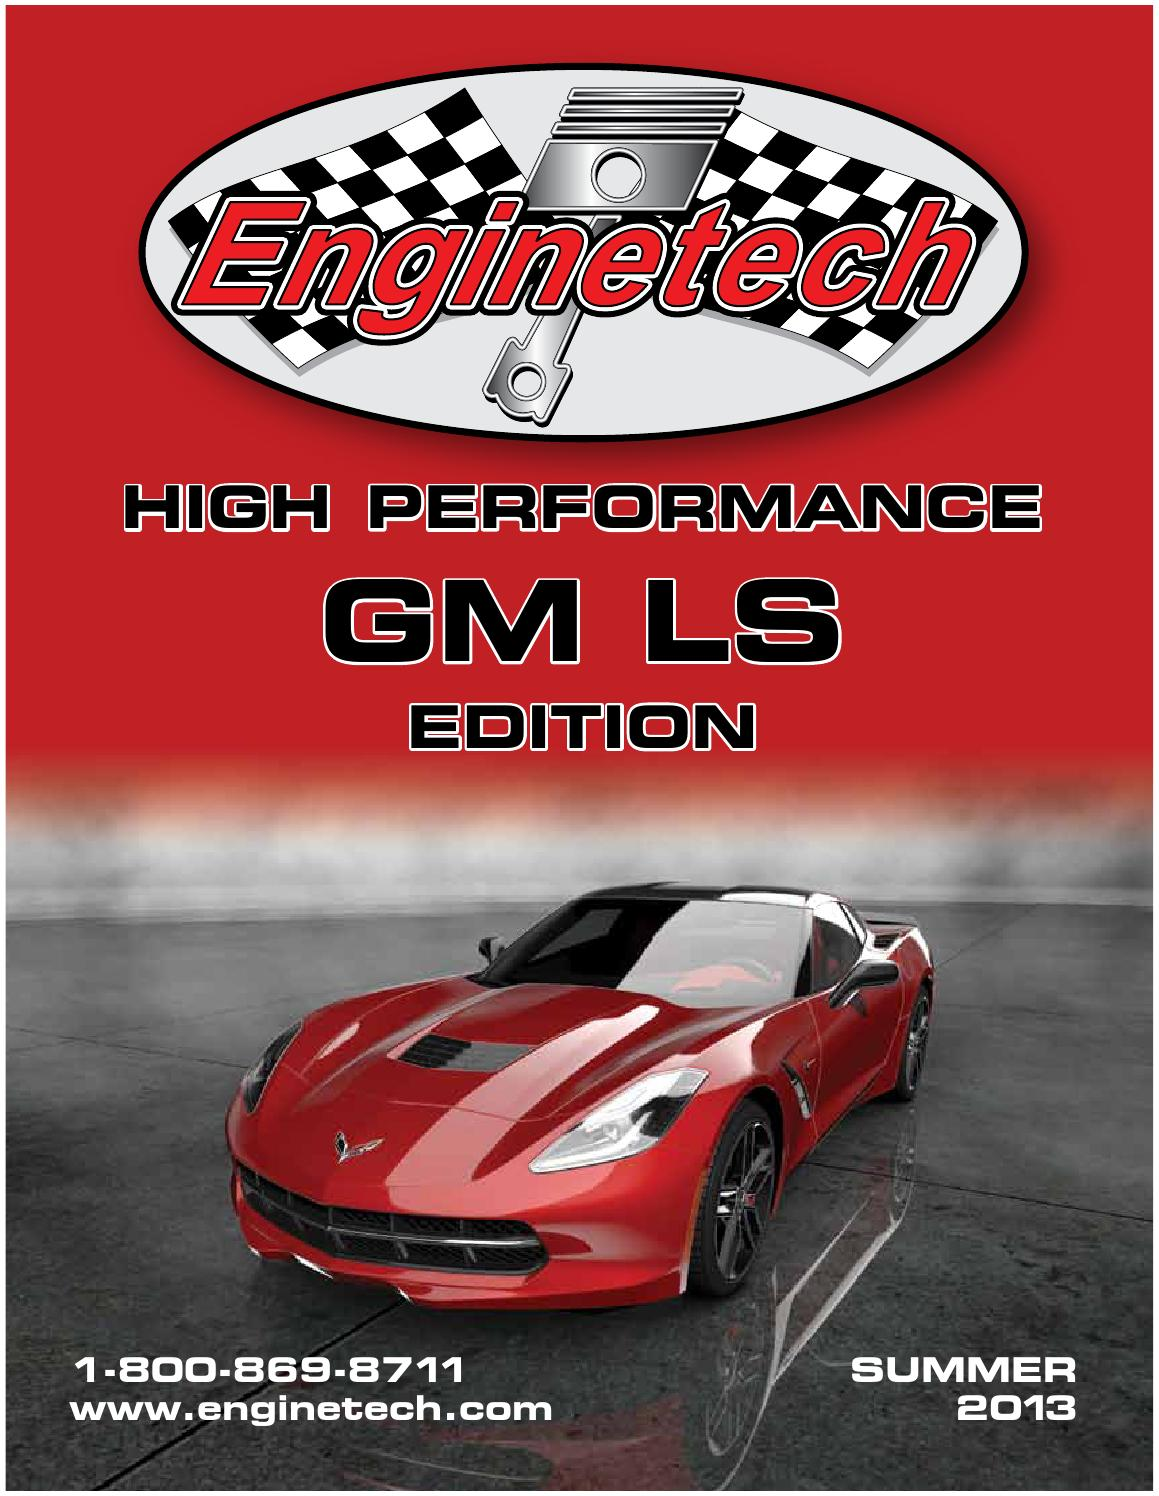 Enginetech High Performance Catalog / GM LS by Rich Graham